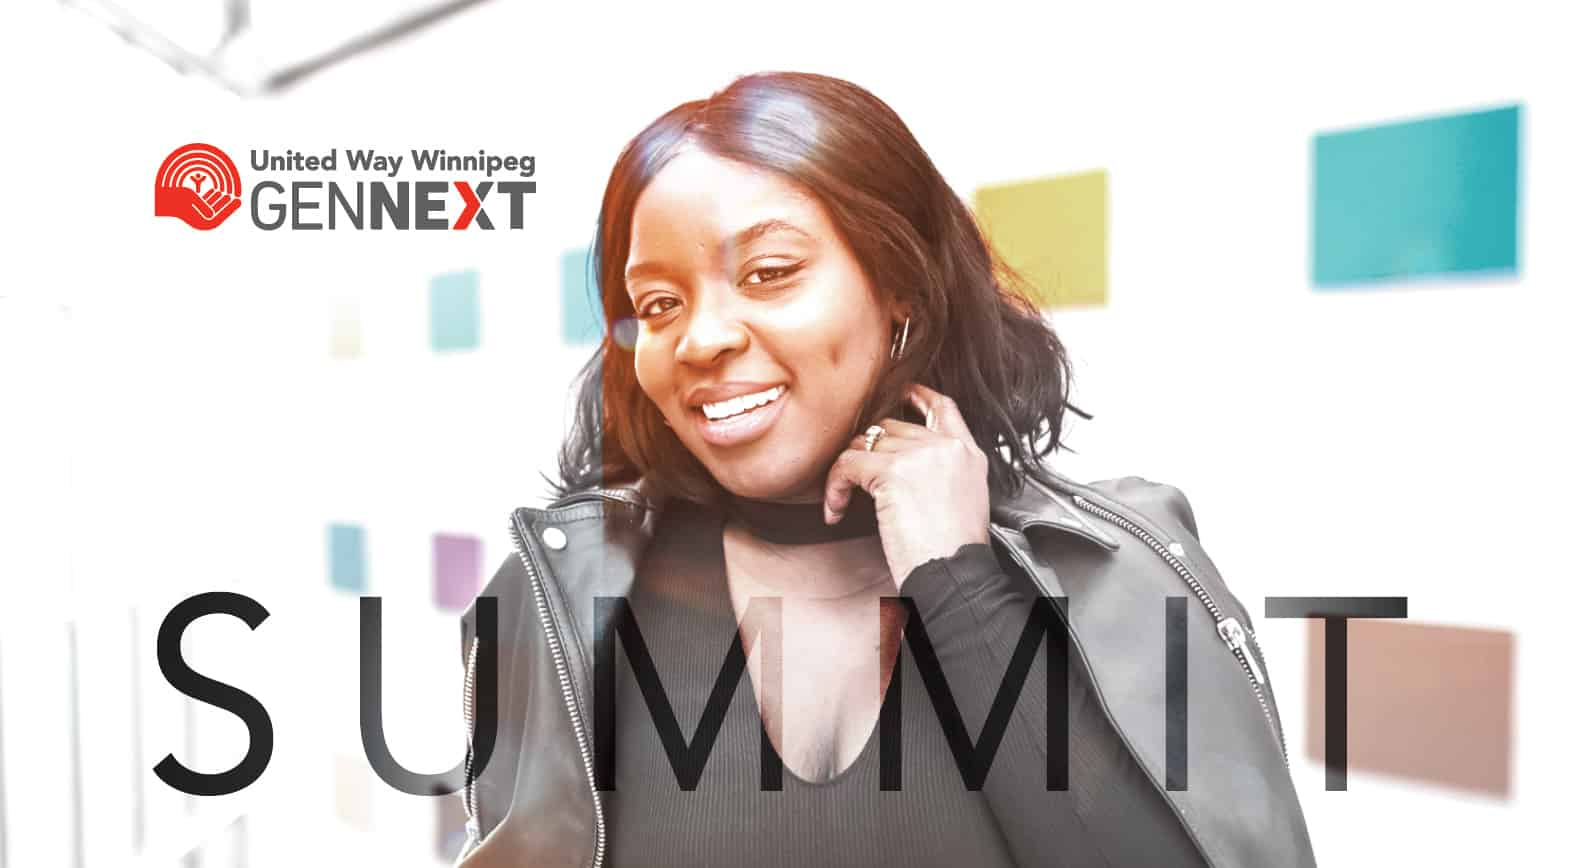 We hope you'll join us for the GenNext Summit.